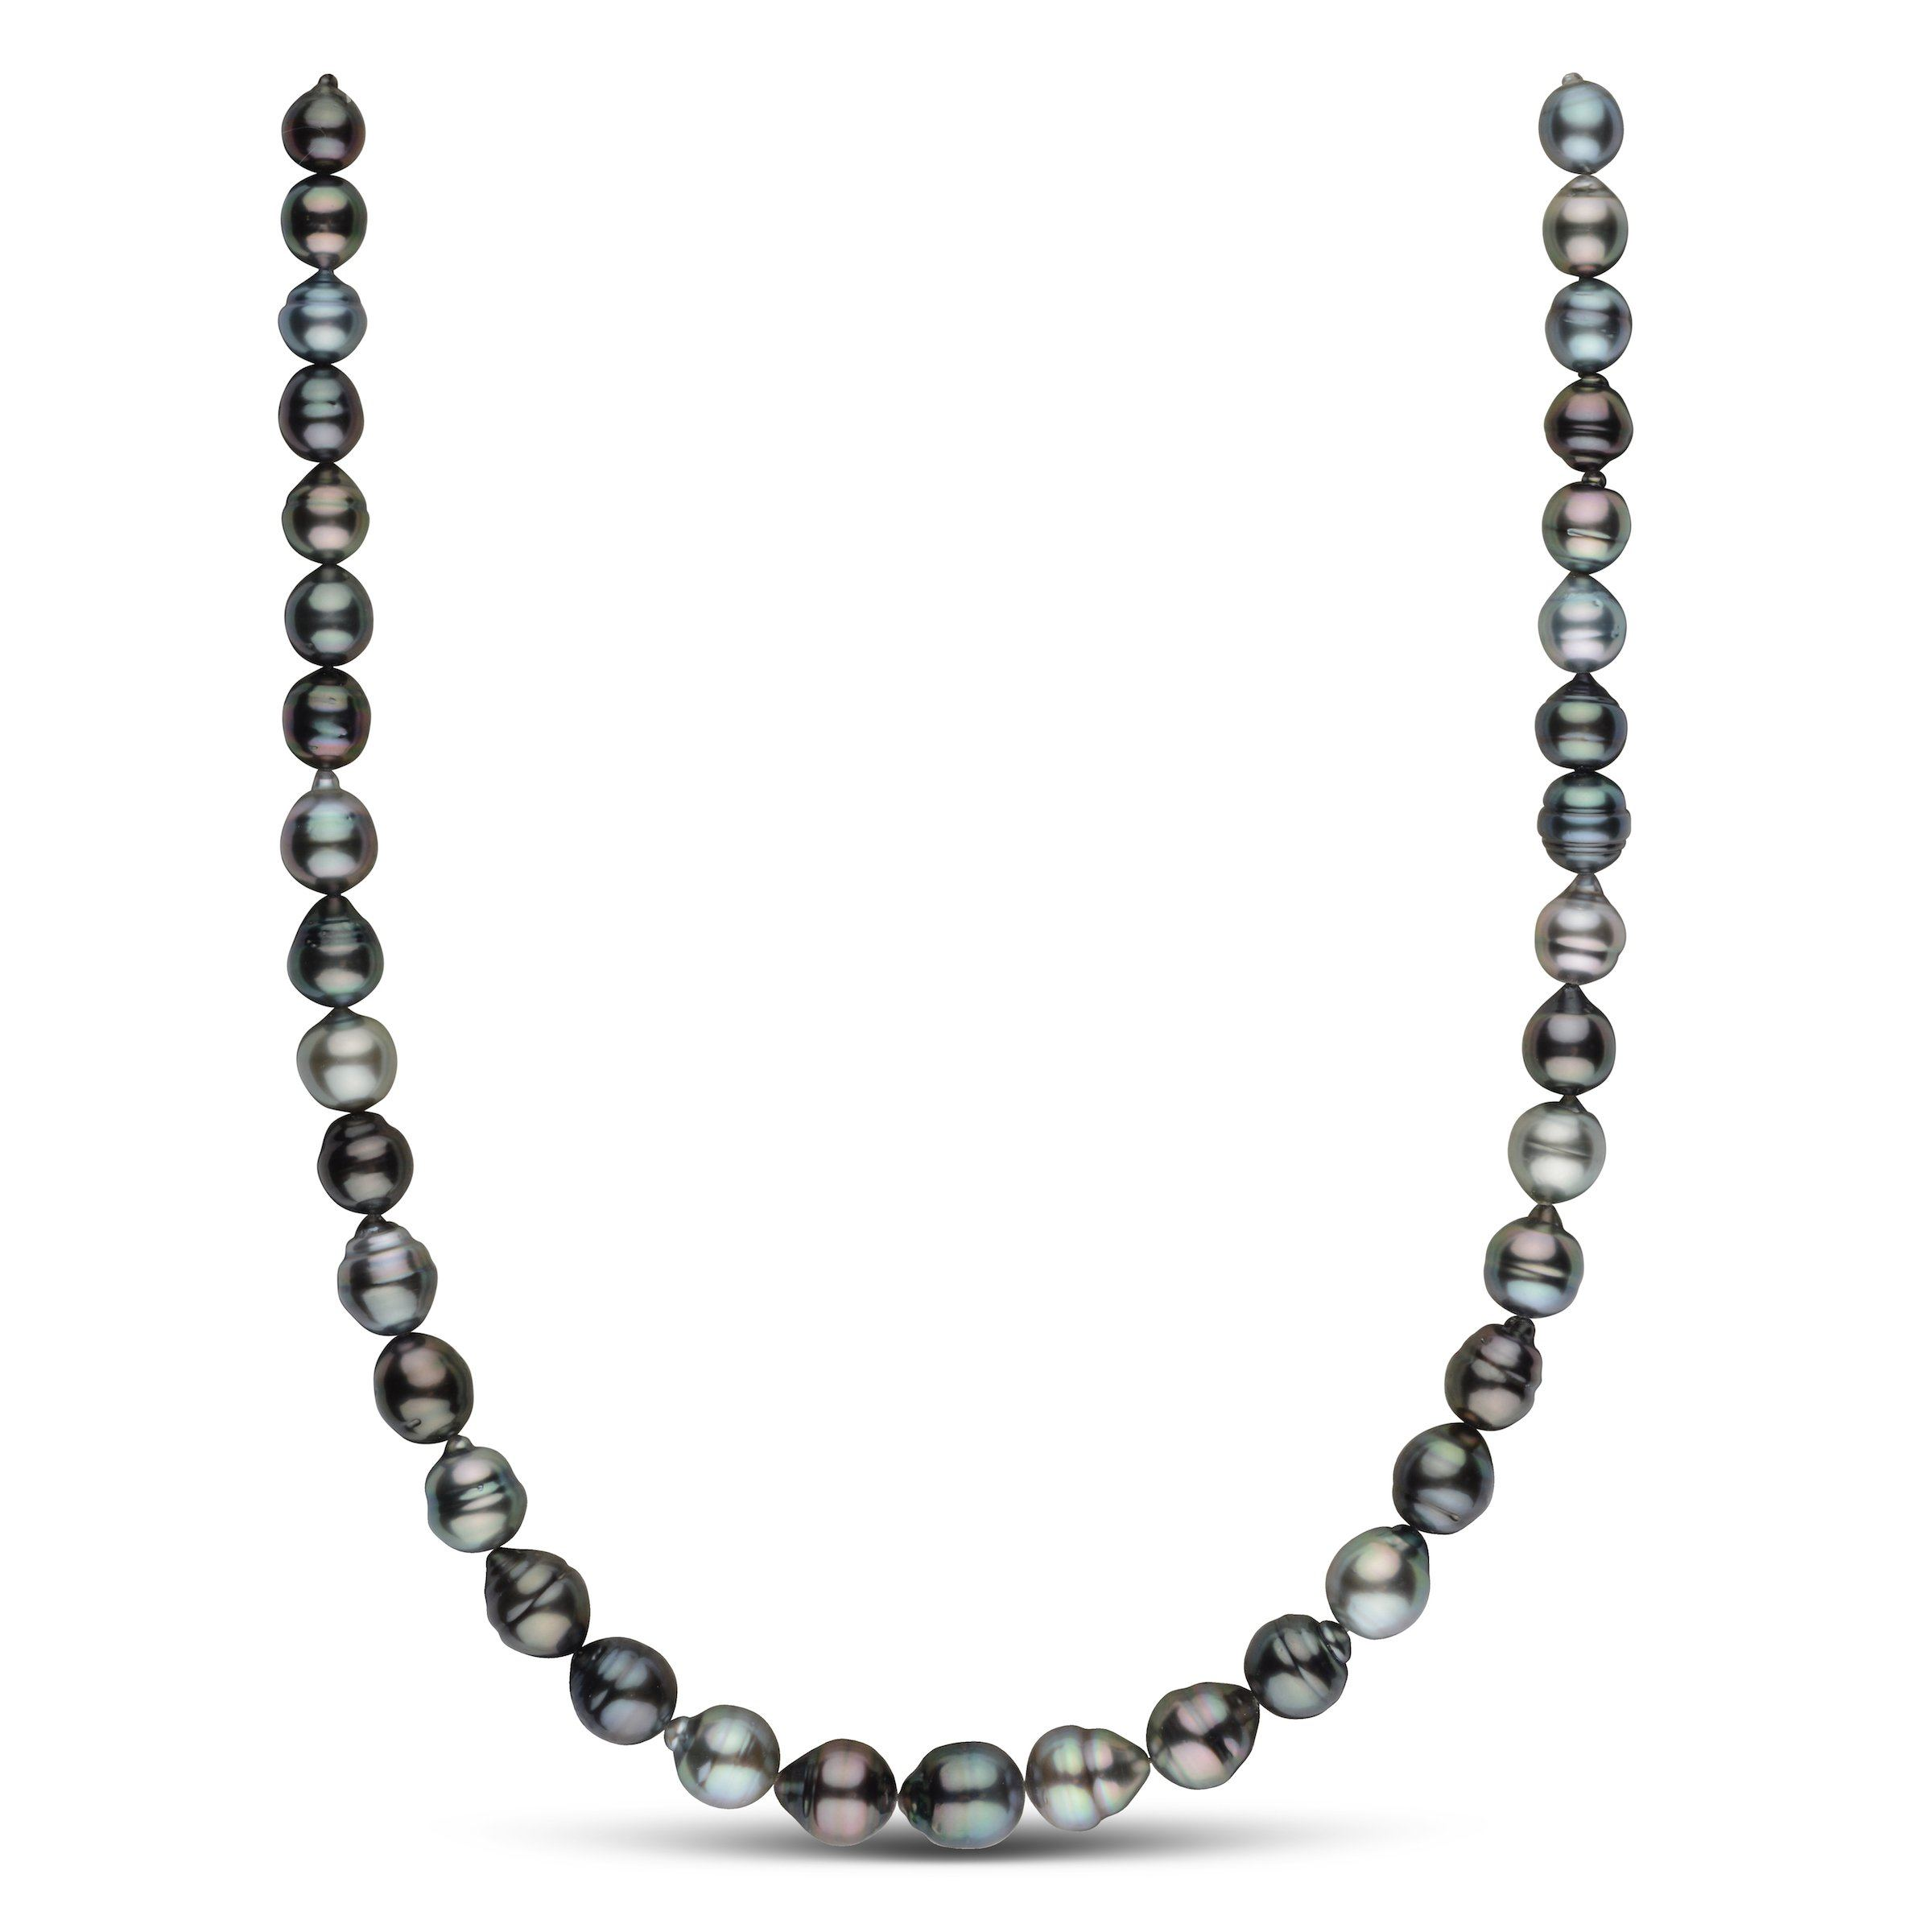 8.0-10.3 mm AA+/AAA Tahitian Baroque Pearl Necklace